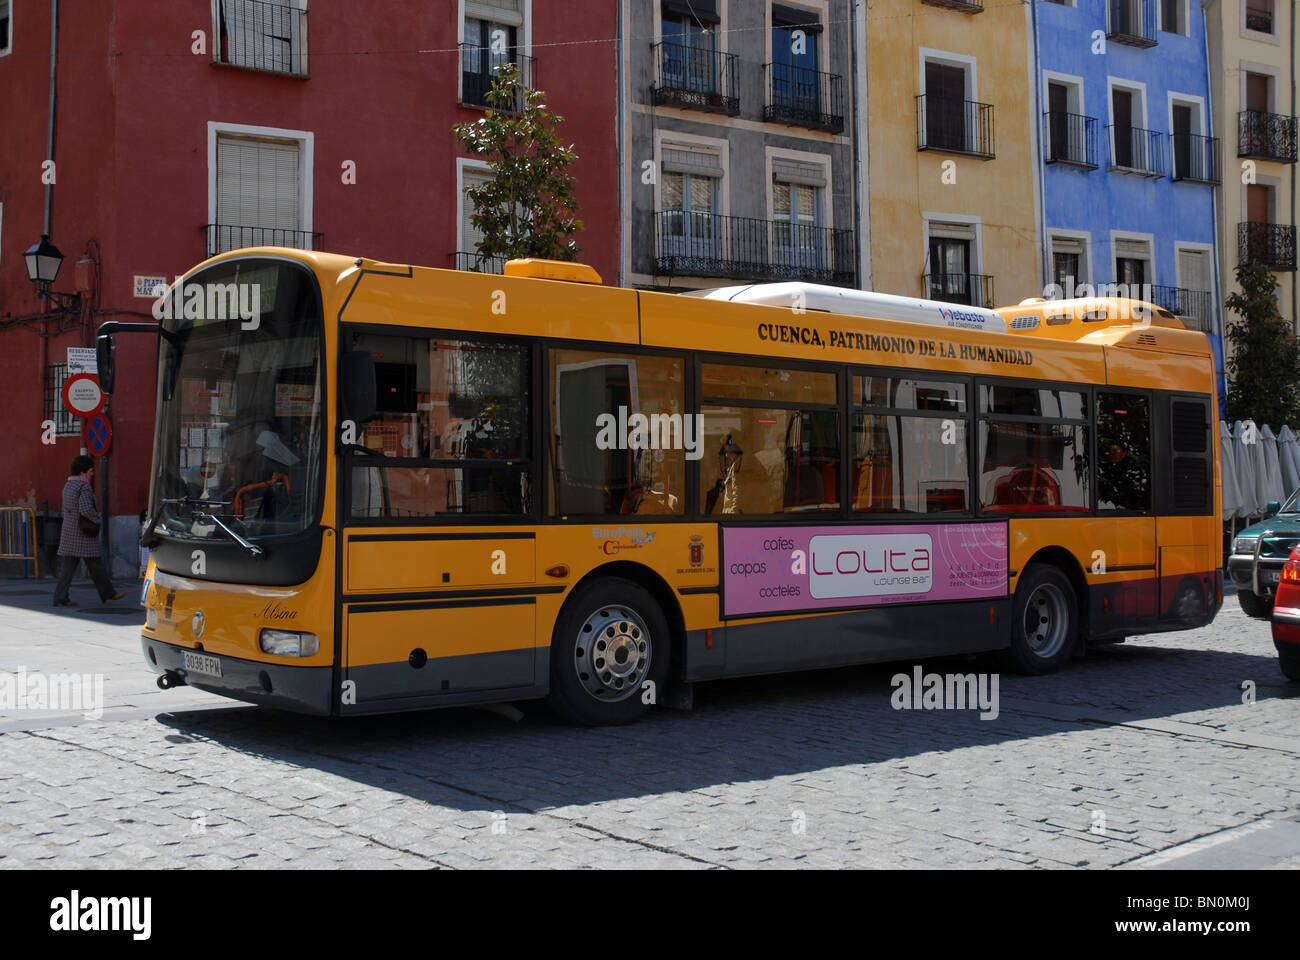 bus in the Plaza Mayor, Cuenca, Cuenca Province, Castile-La Mancha, Spain Stock Photo